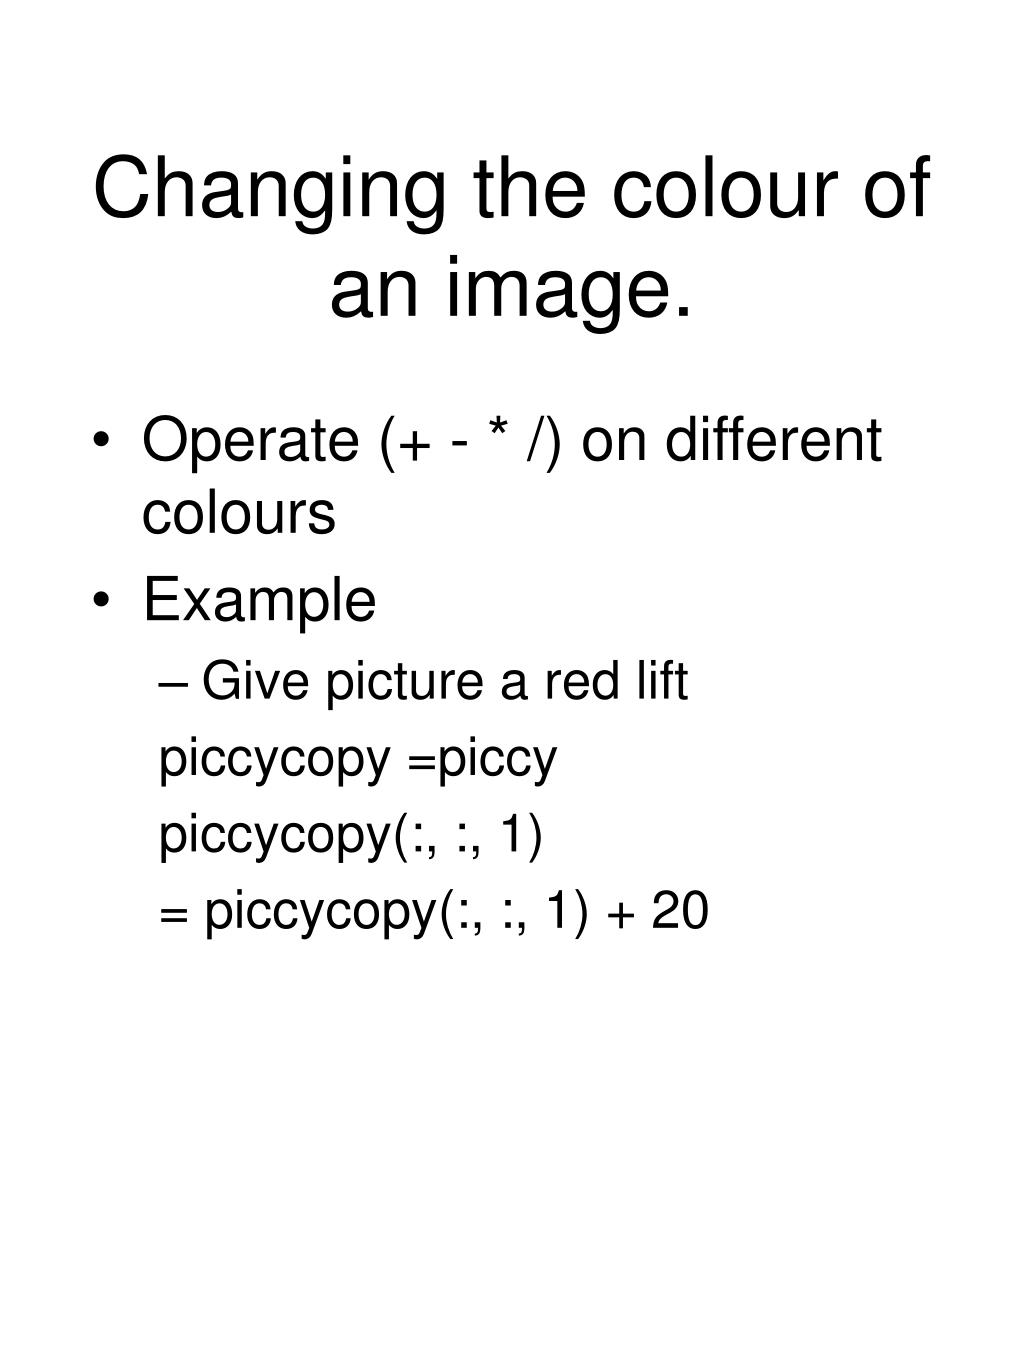 Changing the colour of an image.